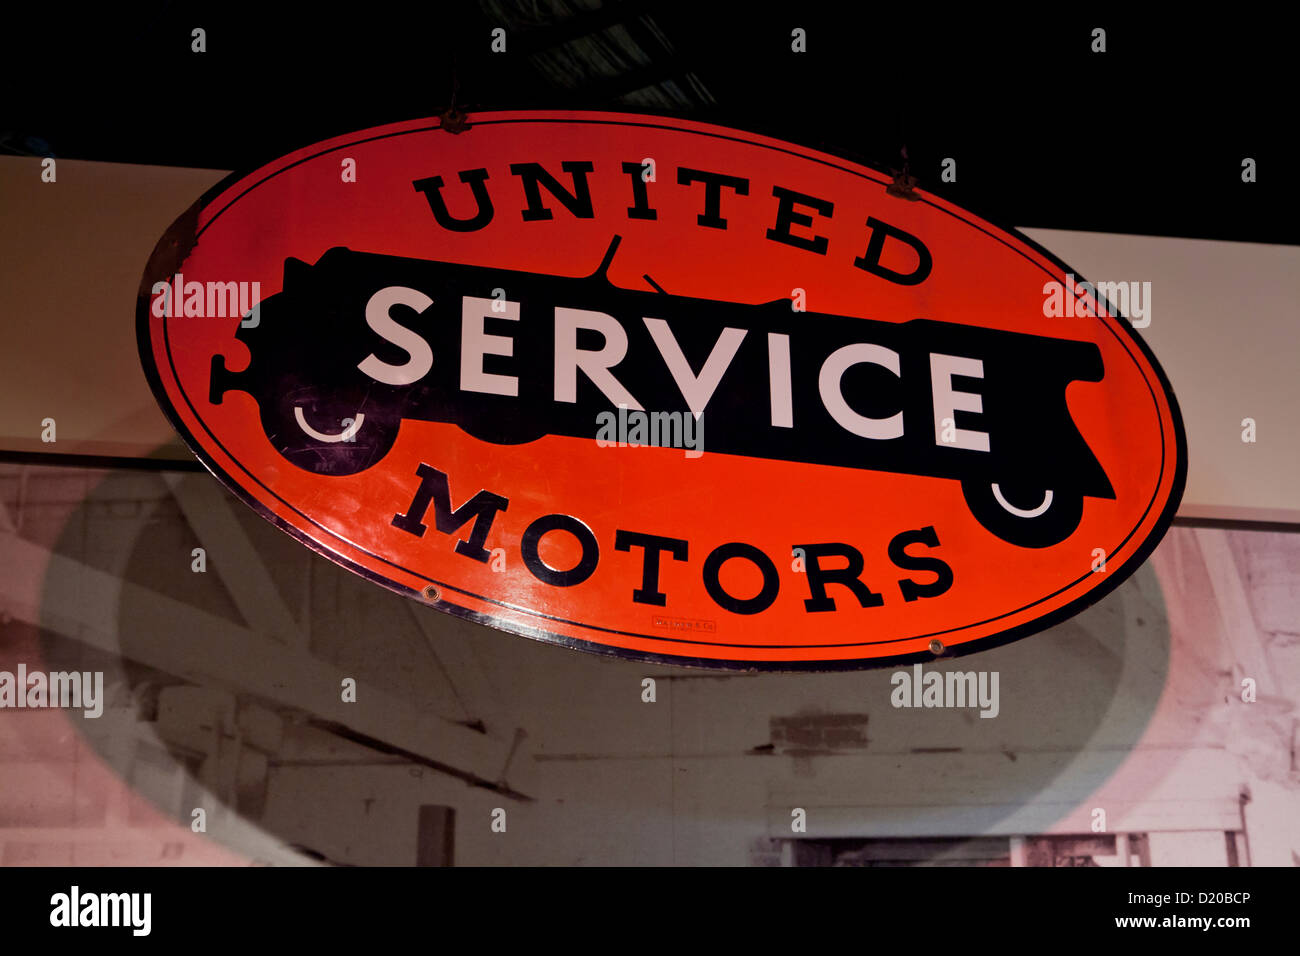 Antique car service center tin sign - Stock Image